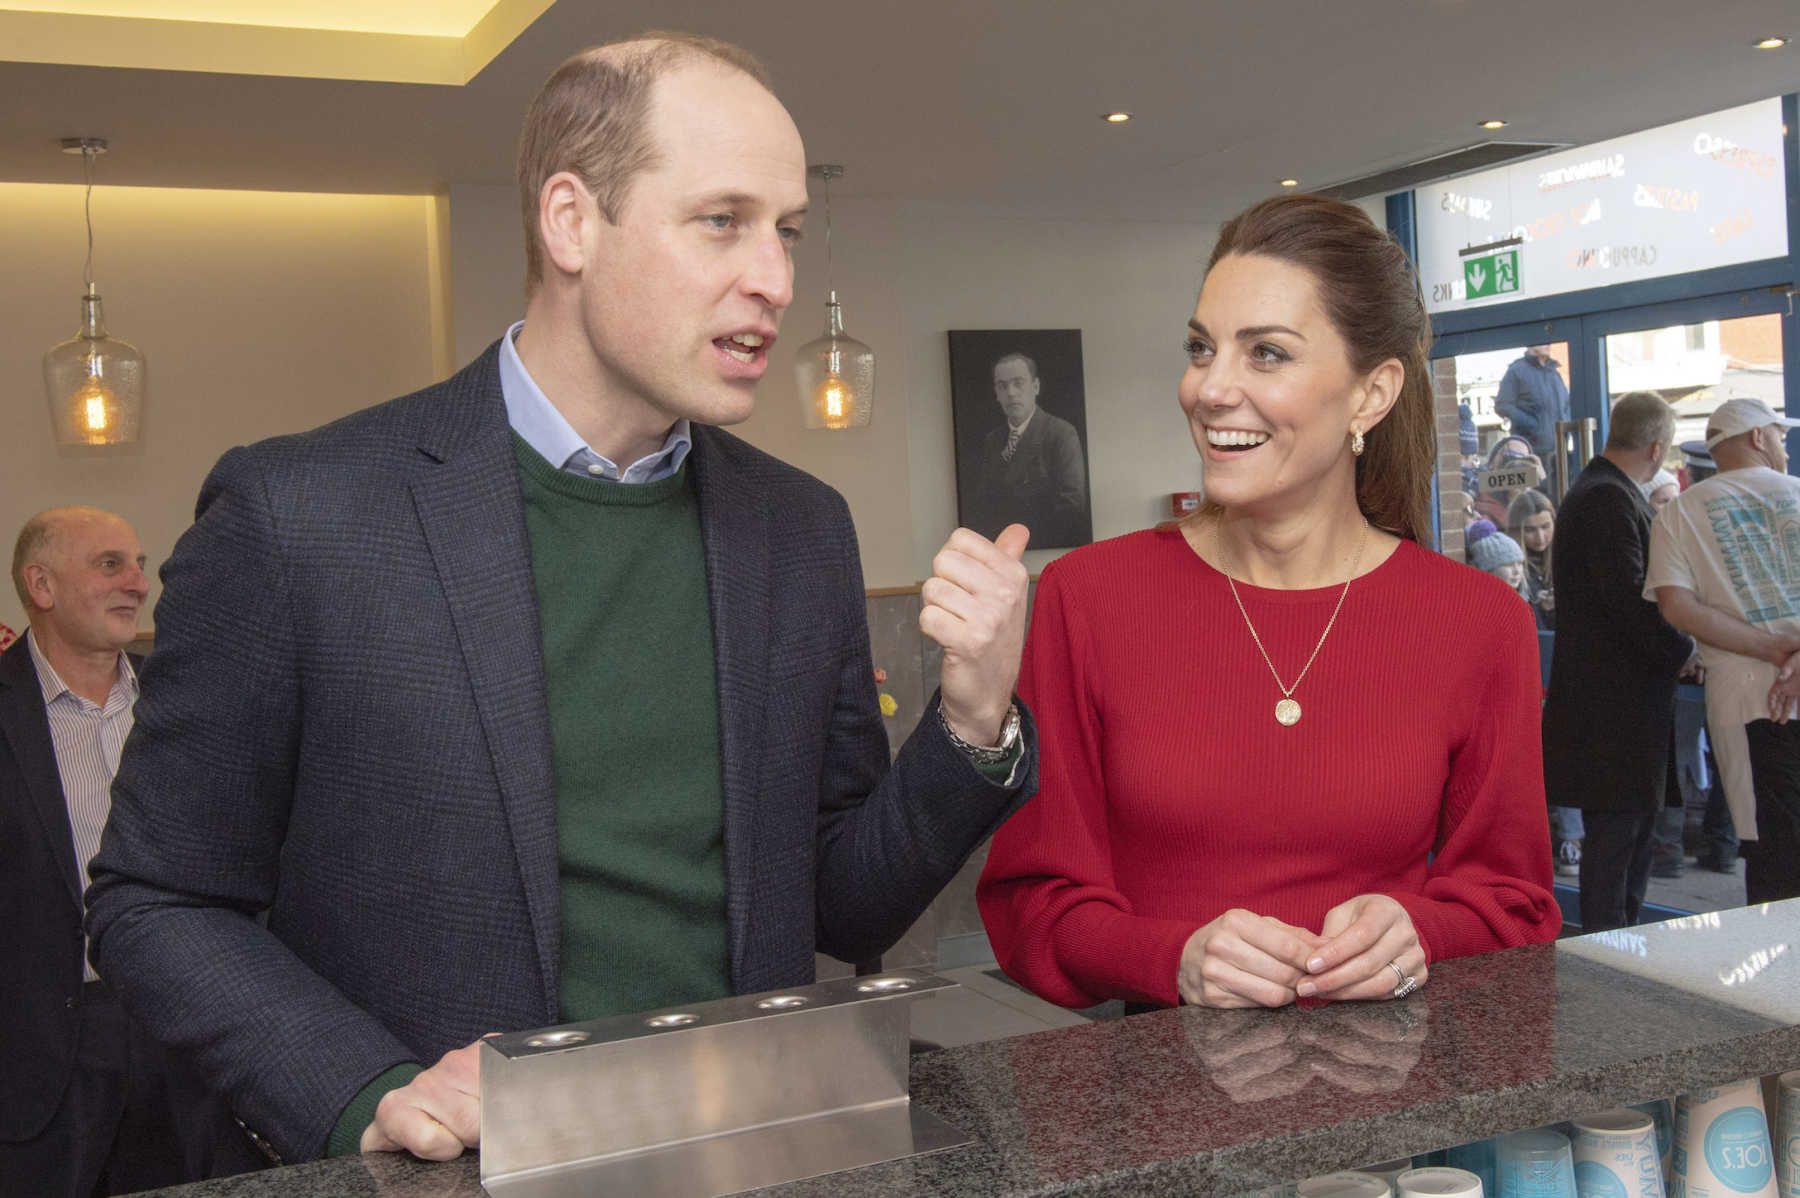 Prince William & Kate Middleton May Miss Out on Christmas With the Queen | Mom.com